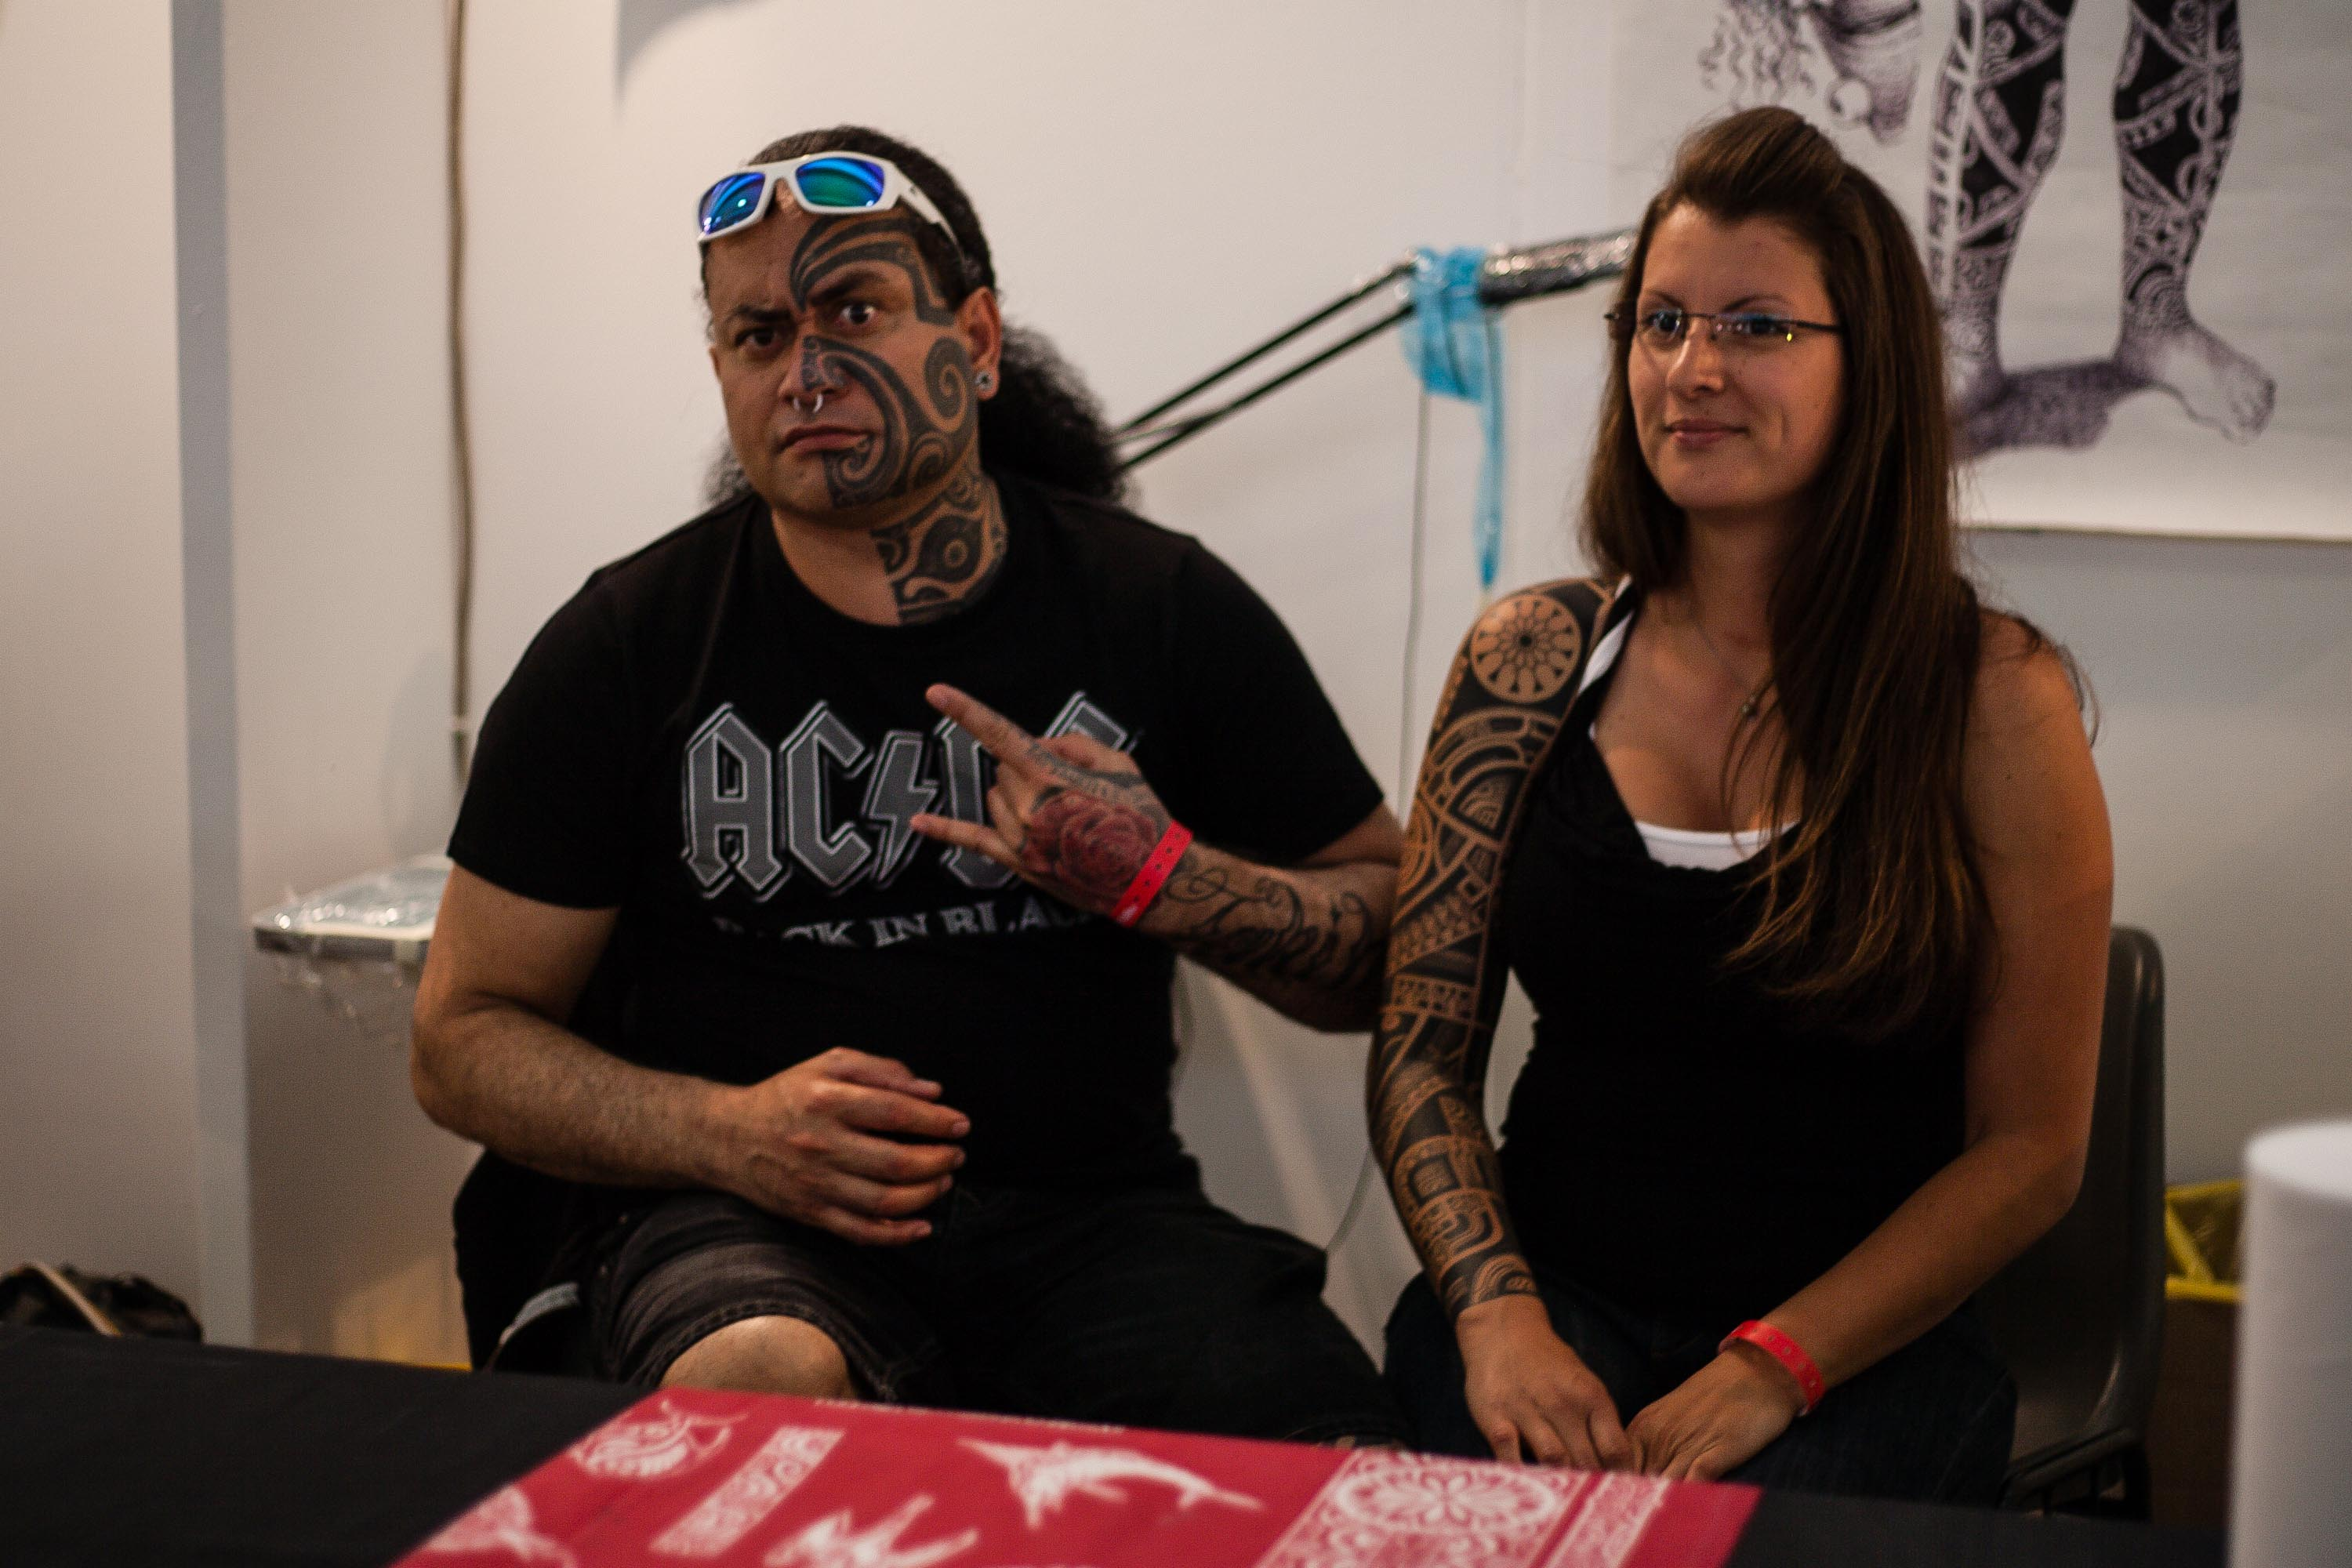 L arte dei tatuaggi all International Tattoo Fest di Napoli  Video  803f4ef7f09